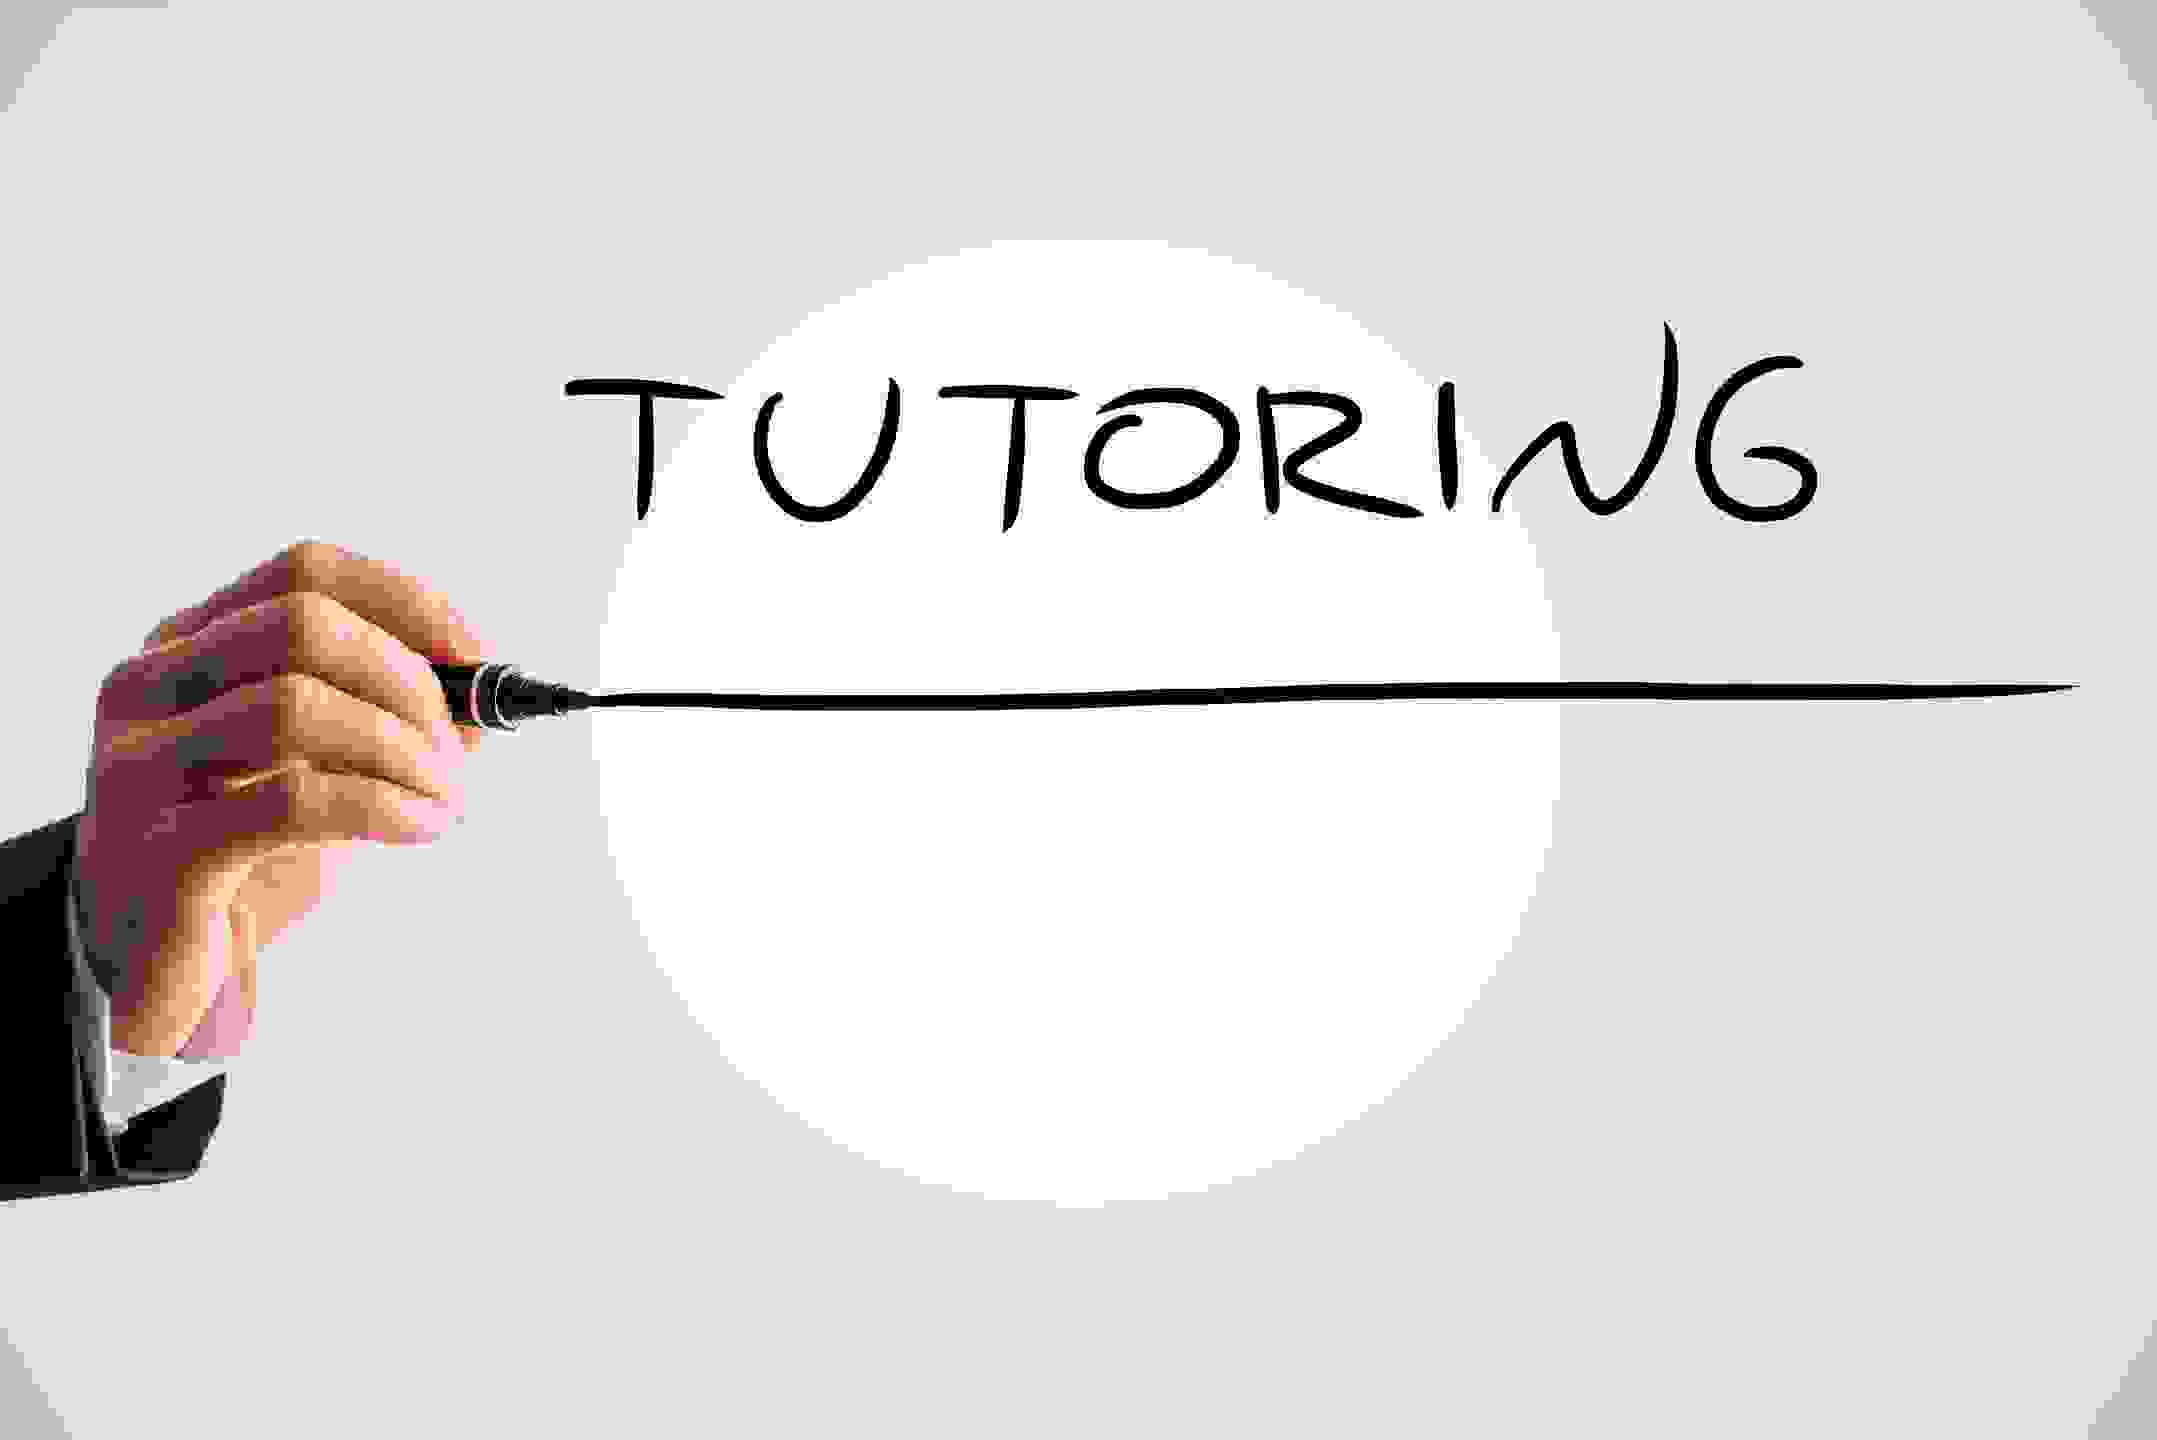 Saraswati home tuitions provides best home tutoring services in mohali, chandigarh & panchkula nearb